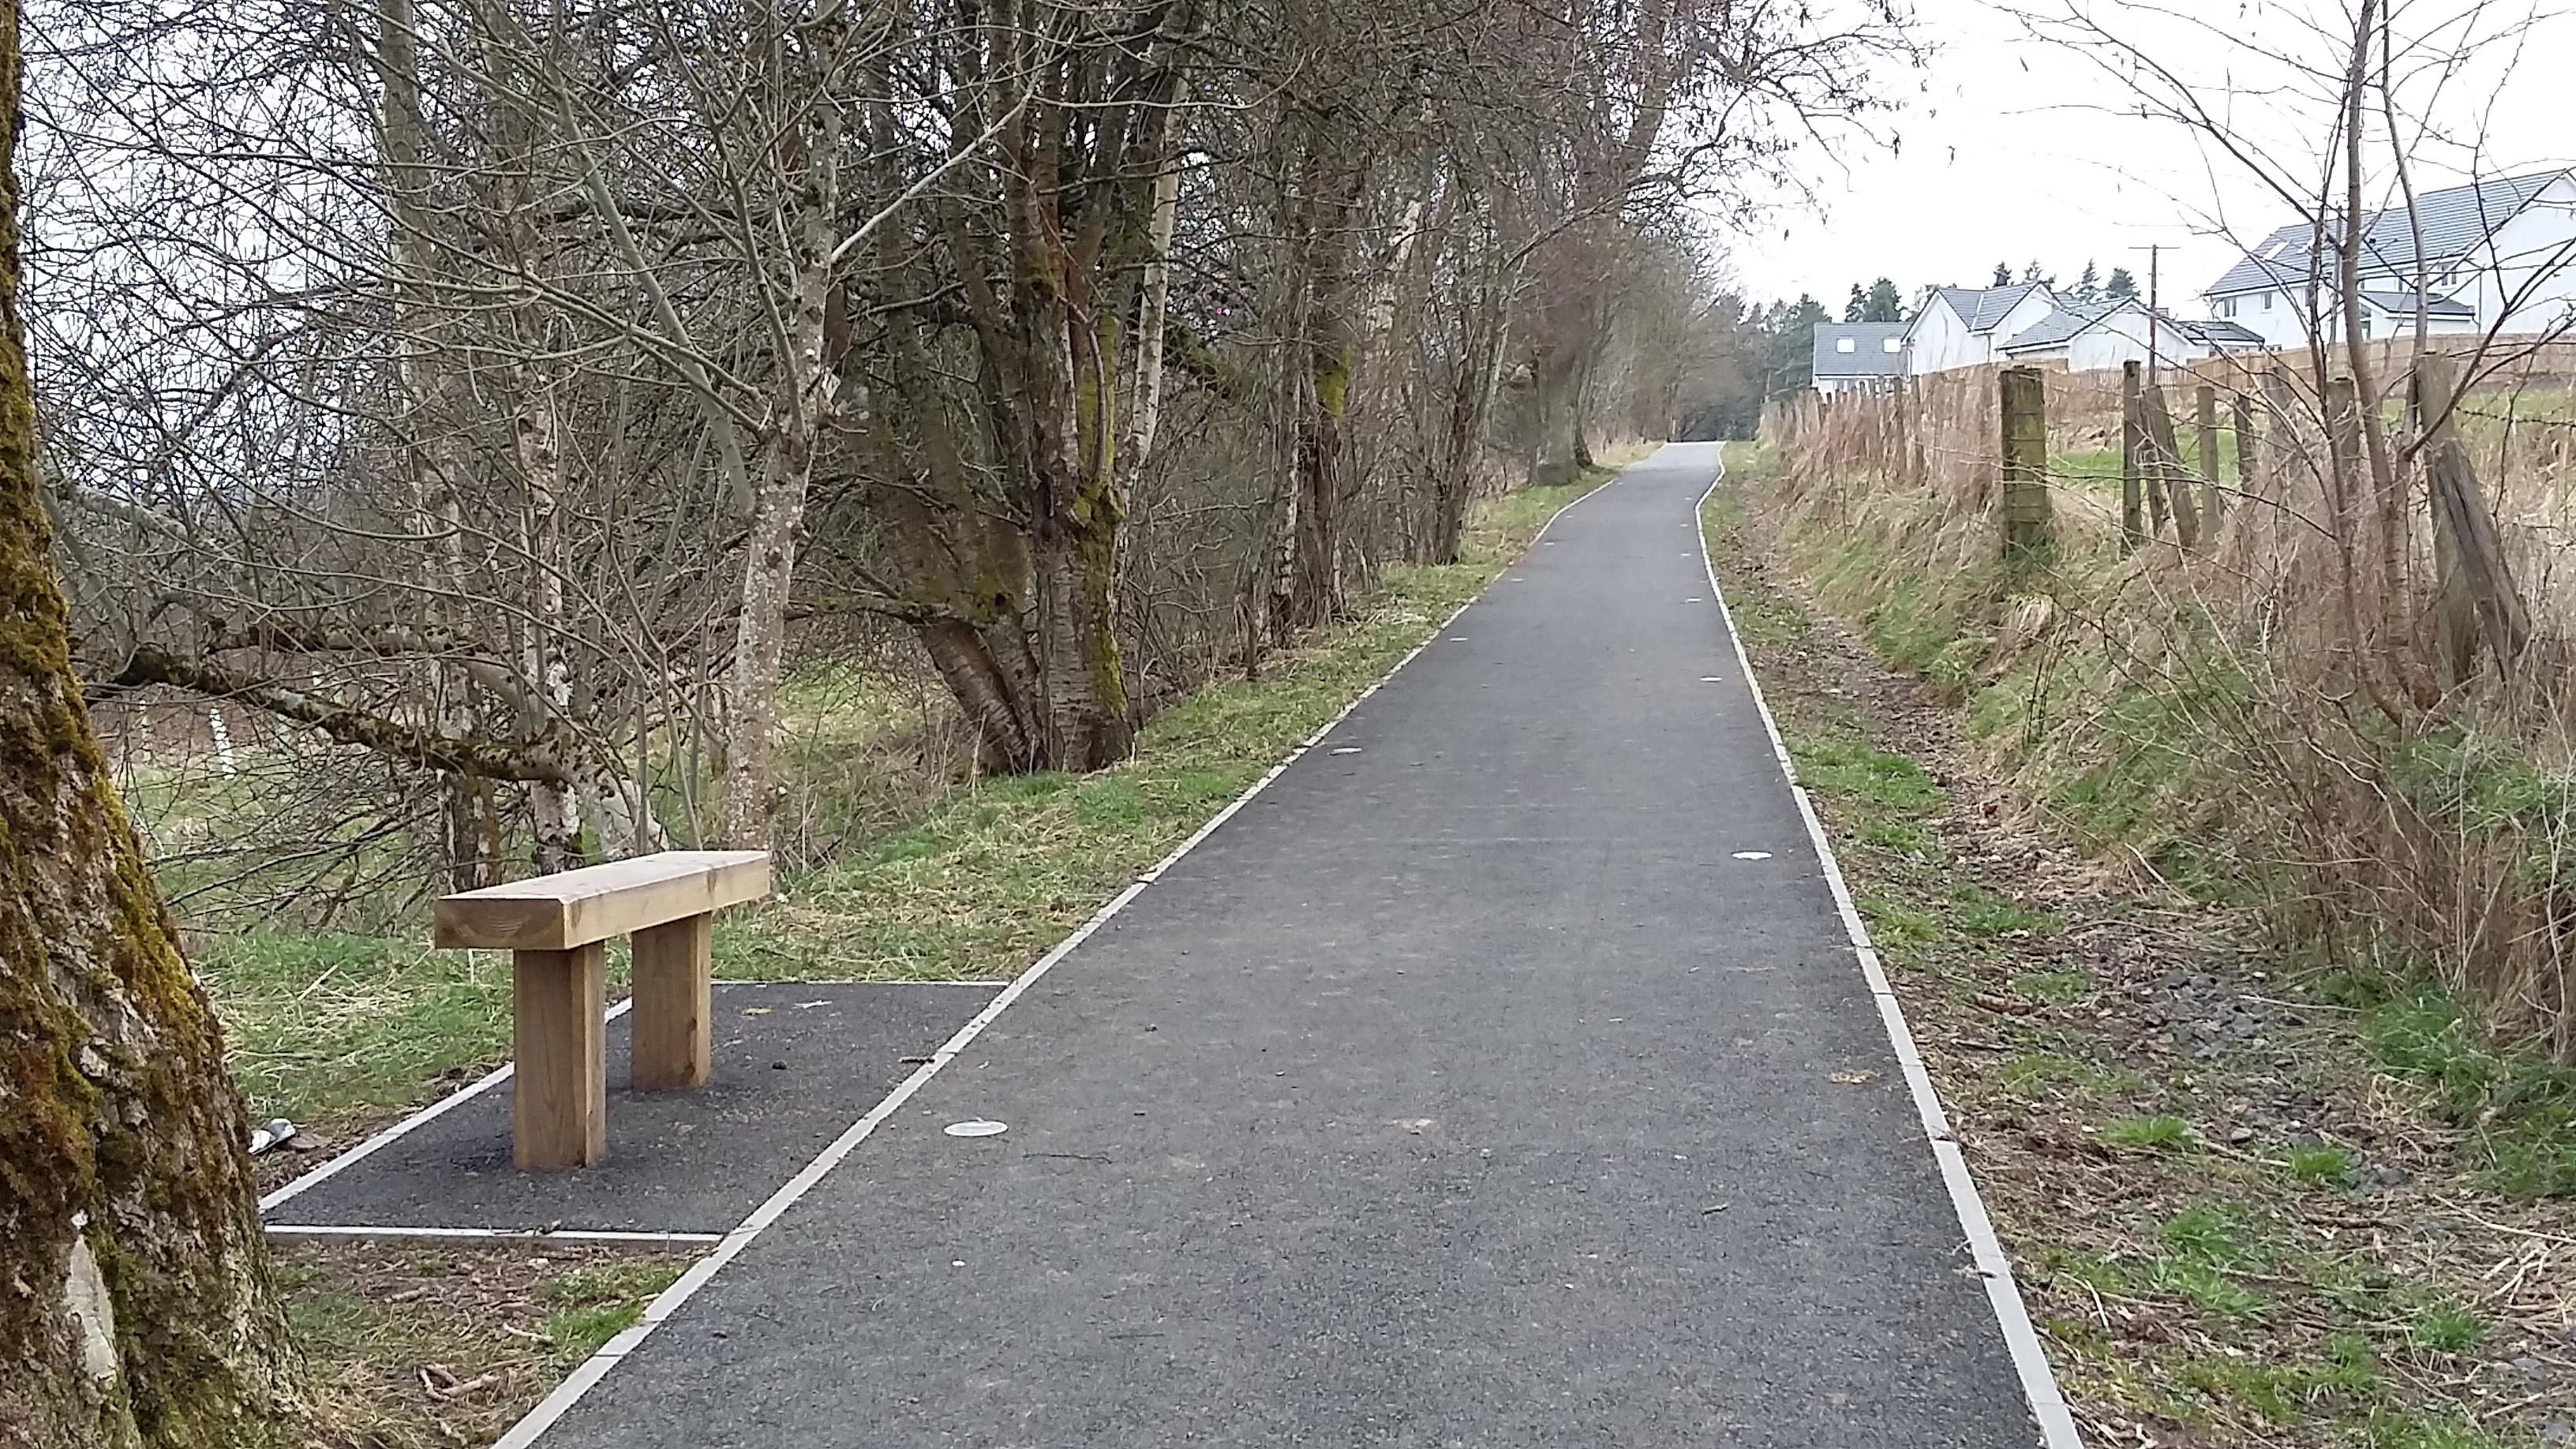 New bench and solar panels installed on upgraded Provost Walk, Auchterarder